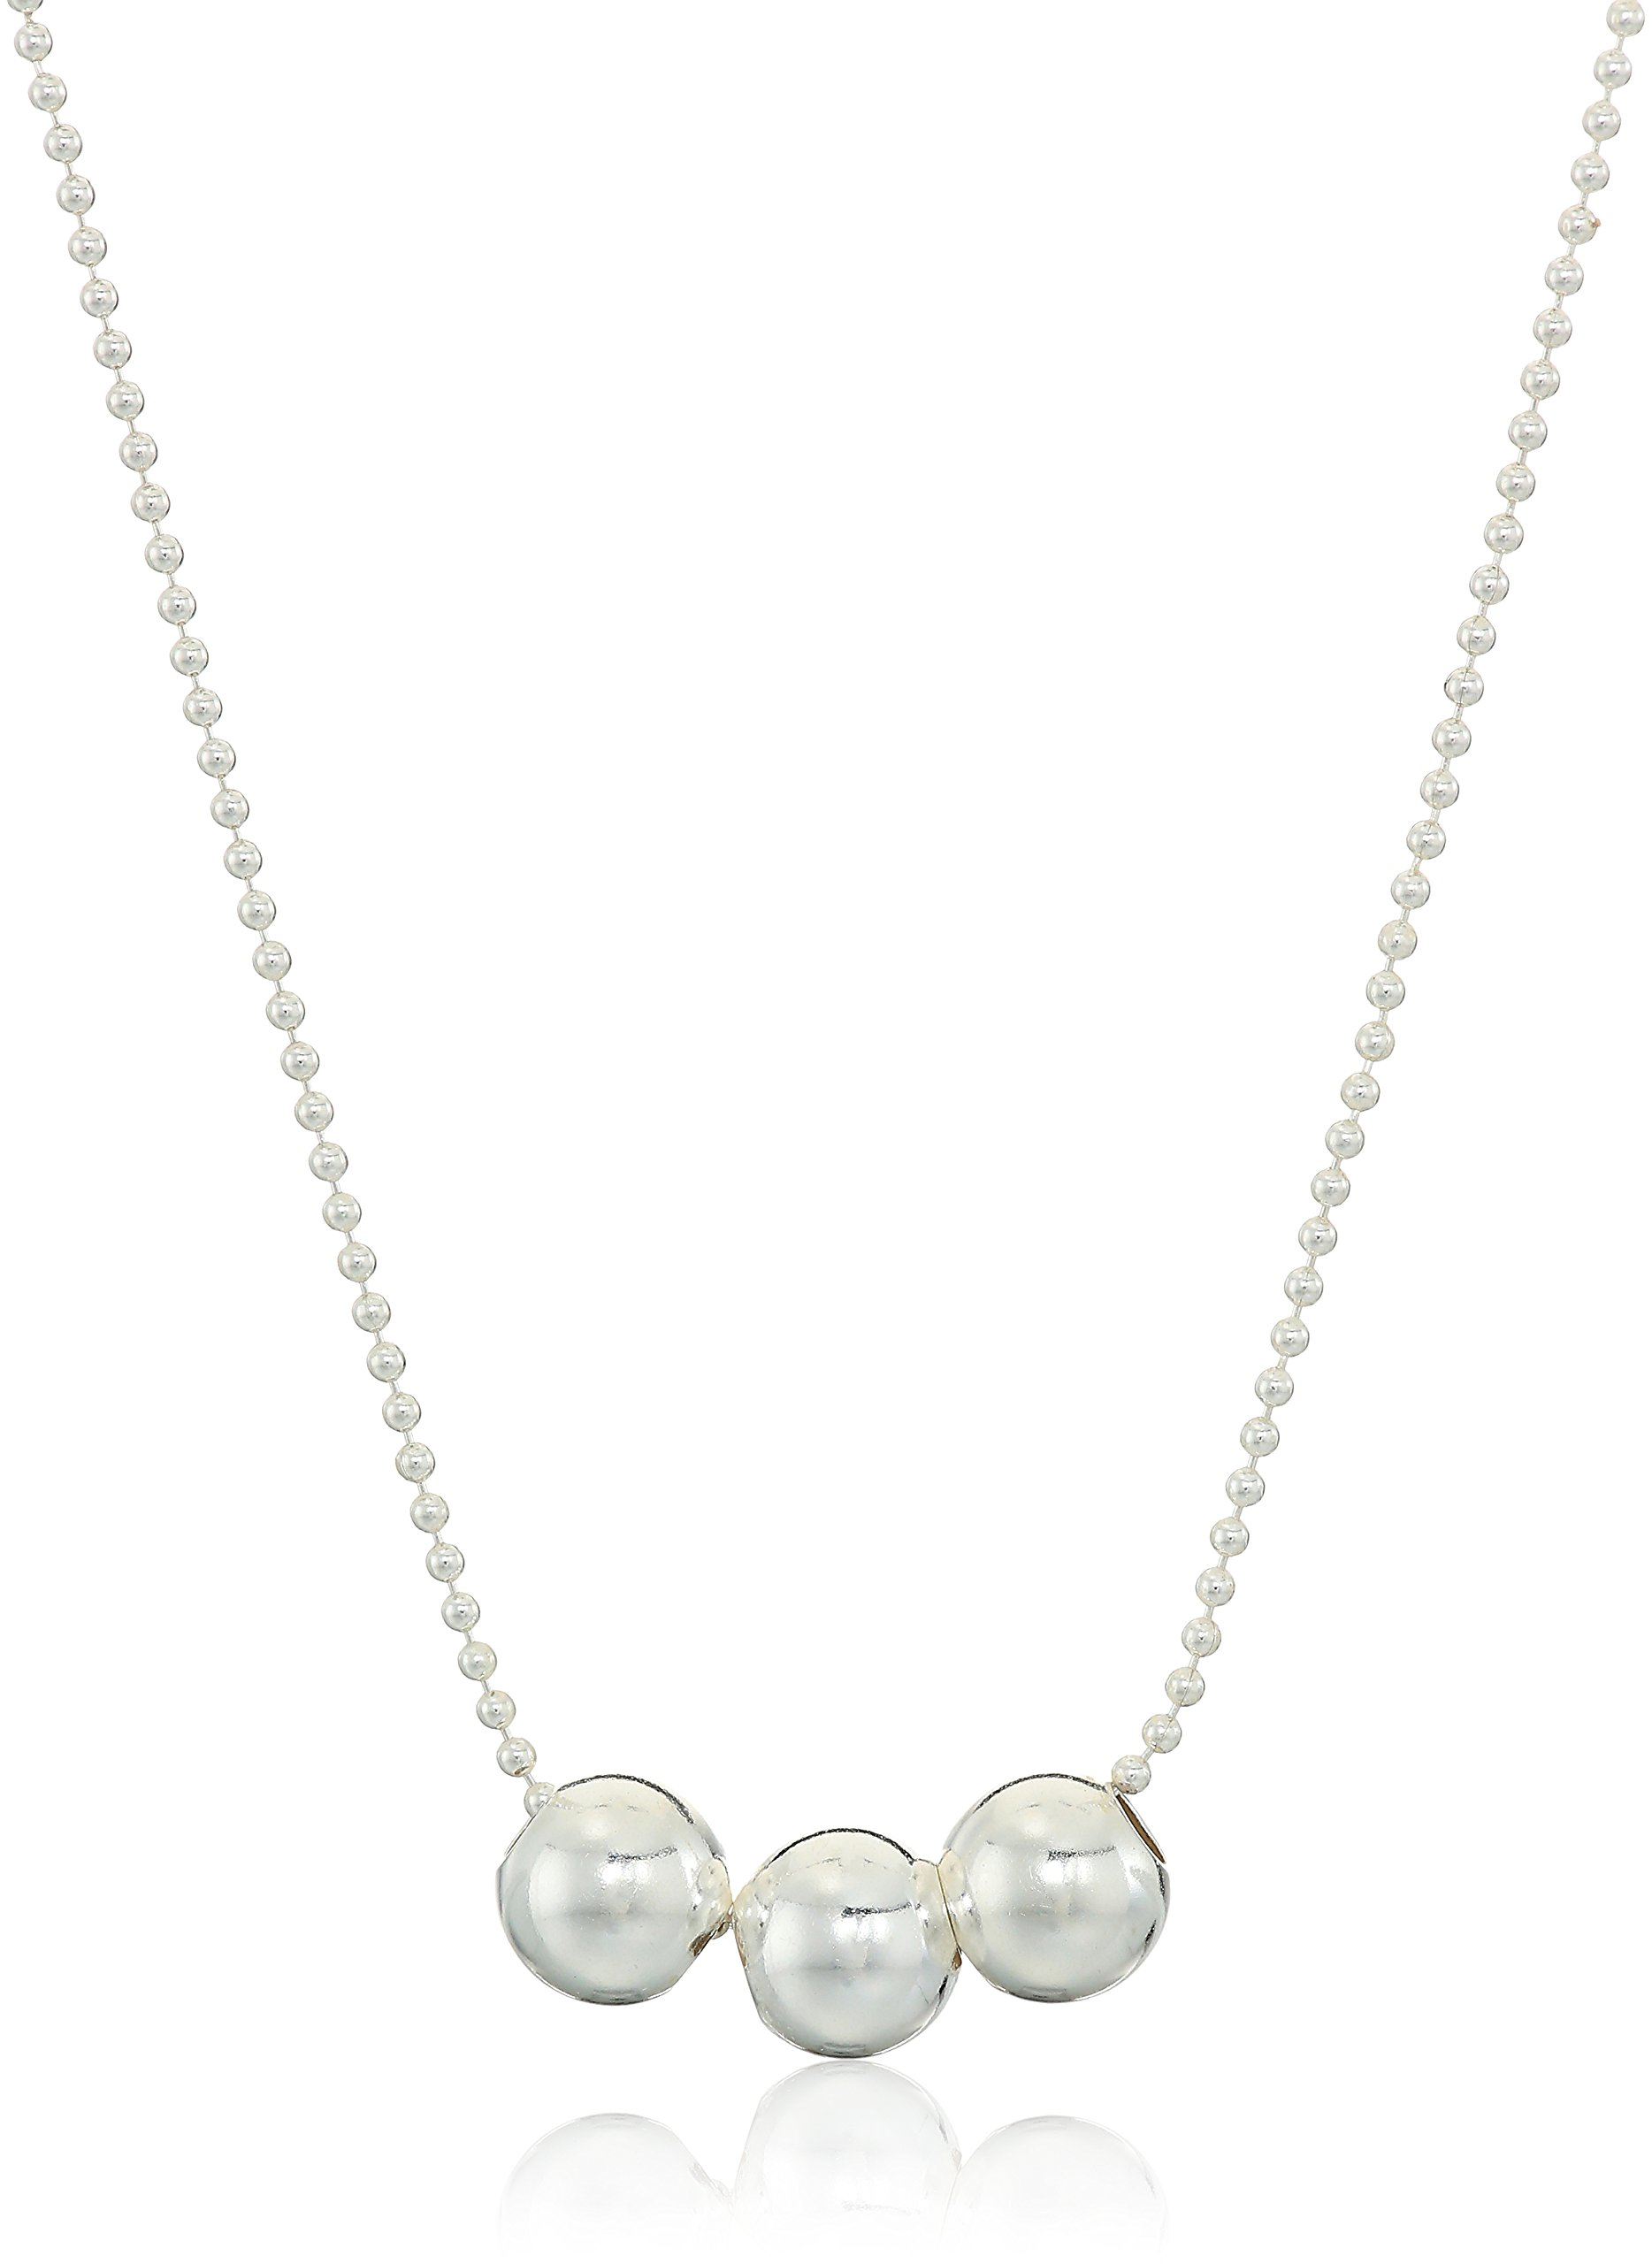 Sterling Silver Necklace with 3 Spacer Beads, 24''